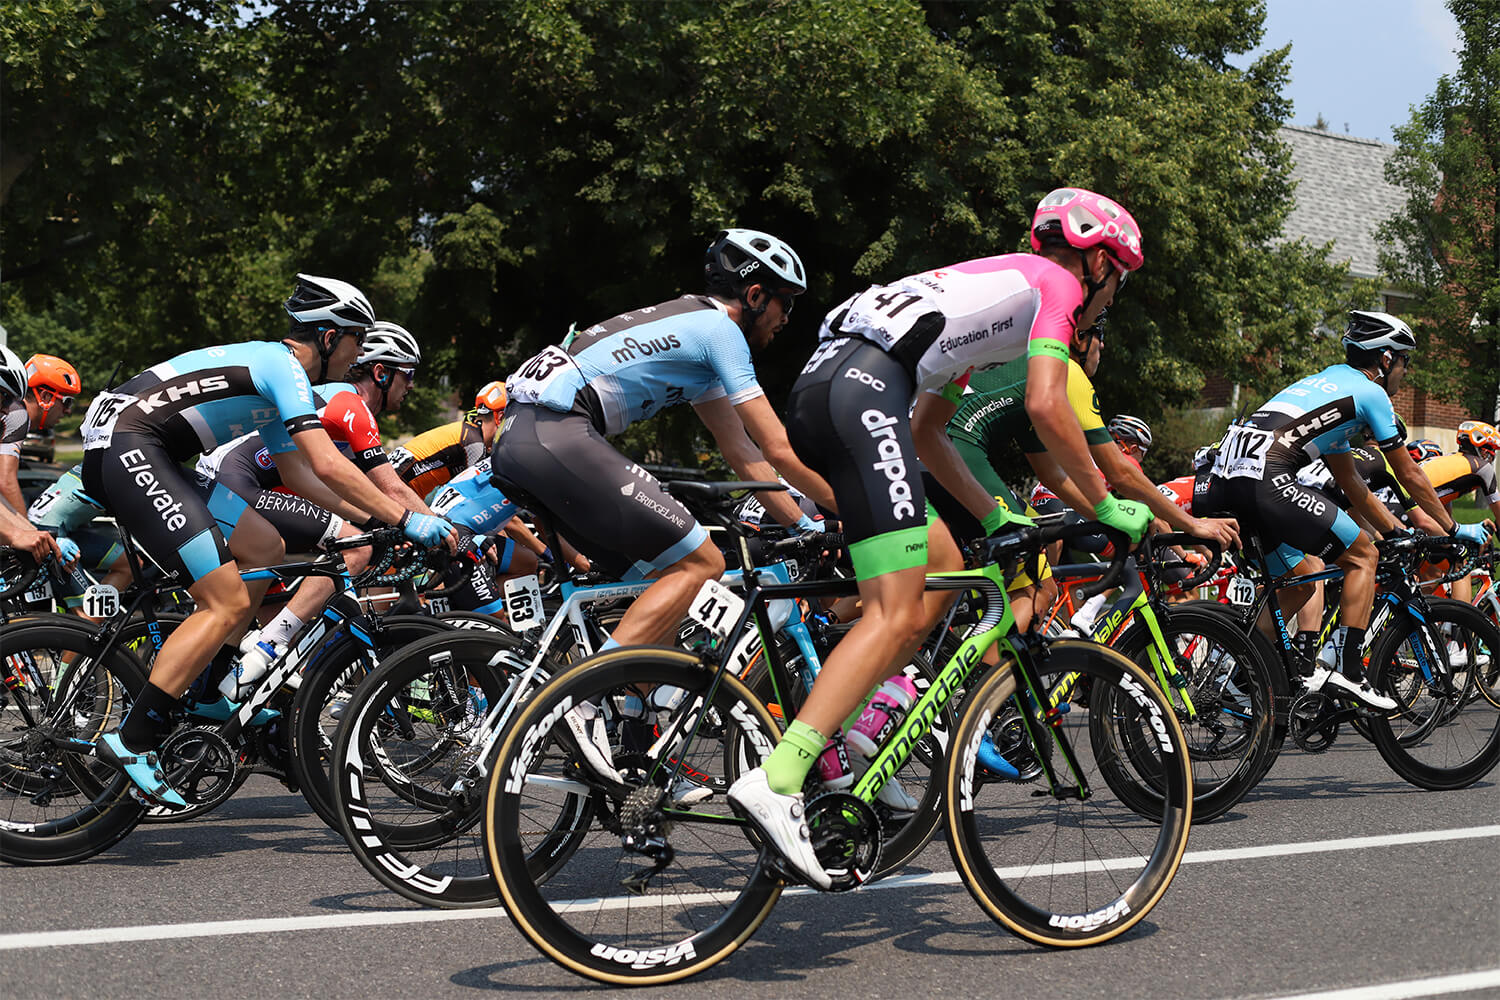 Contender Salt Lake City Stage Tour of Utah 2018 peloton behind the capitol EF-Drapac p b Cannondale